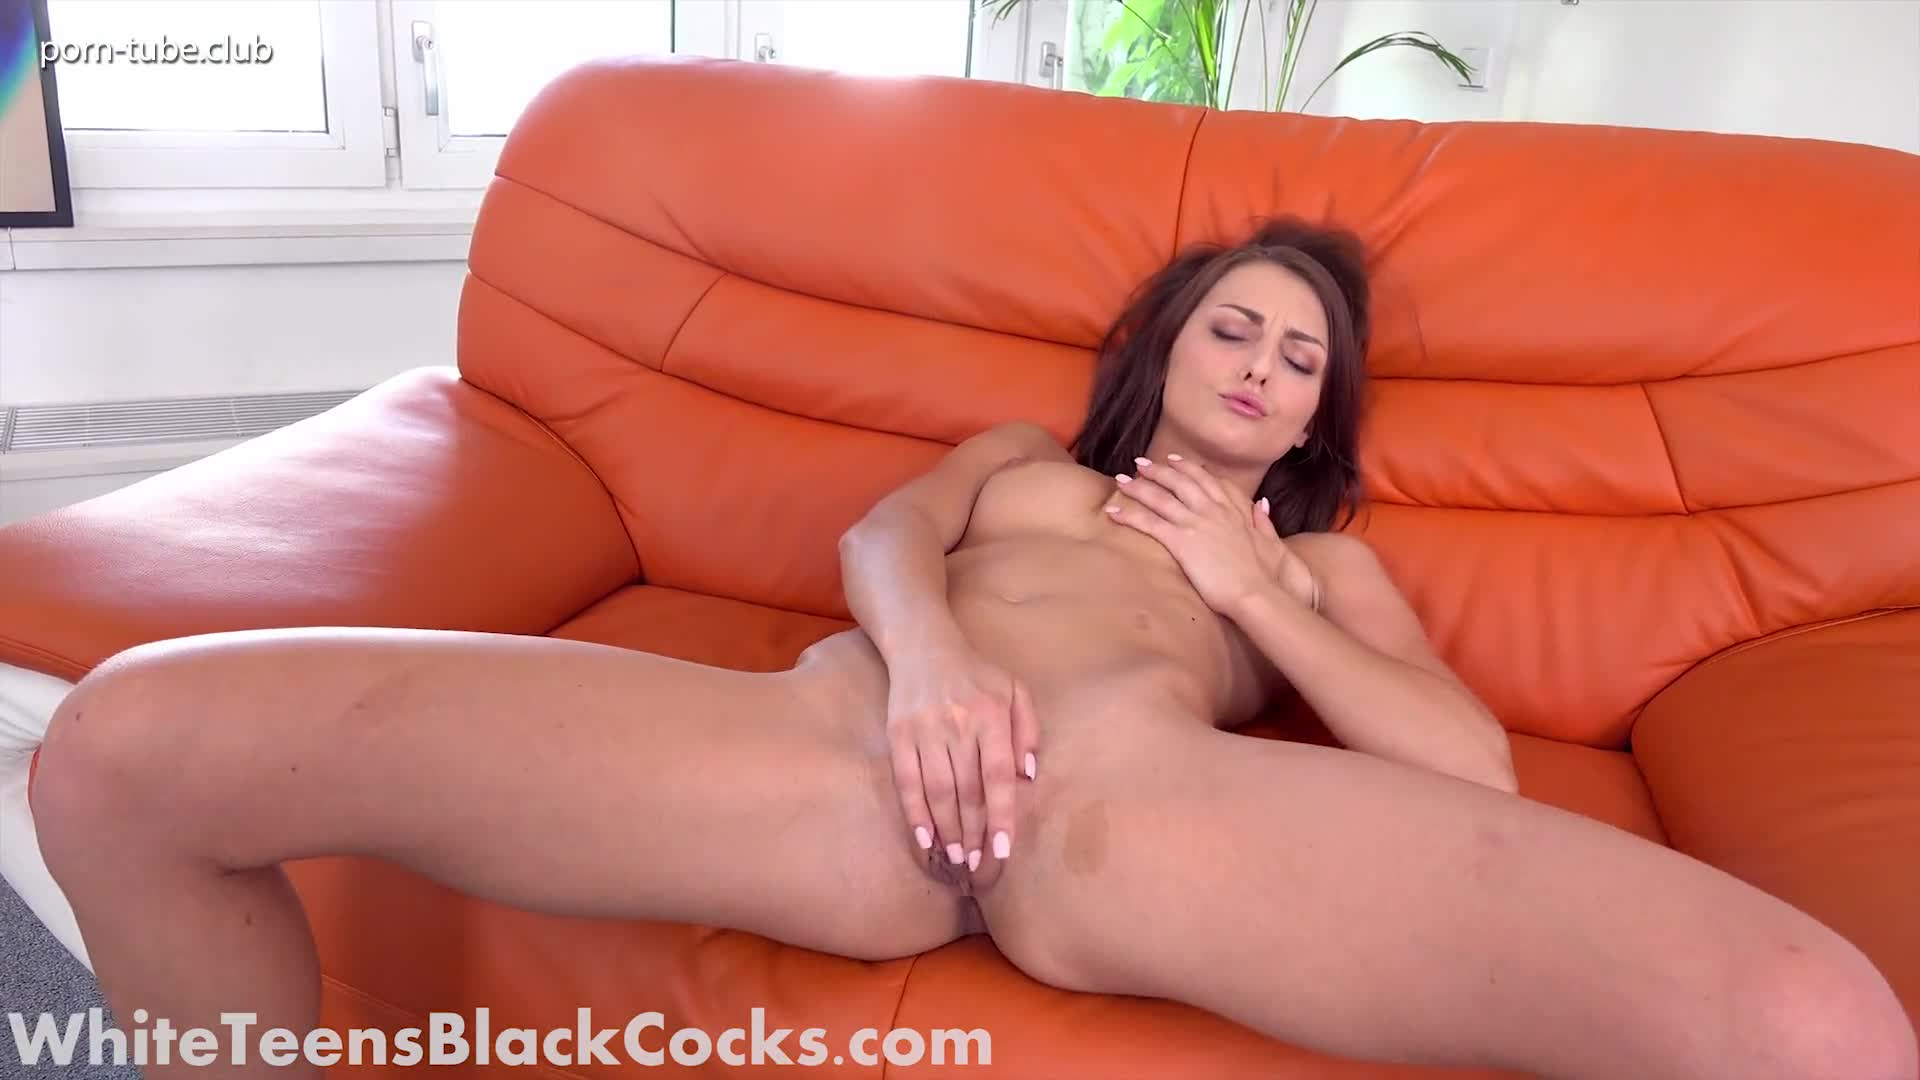 WhiteTeensBlackCocks 17.07.02 Katy Rose